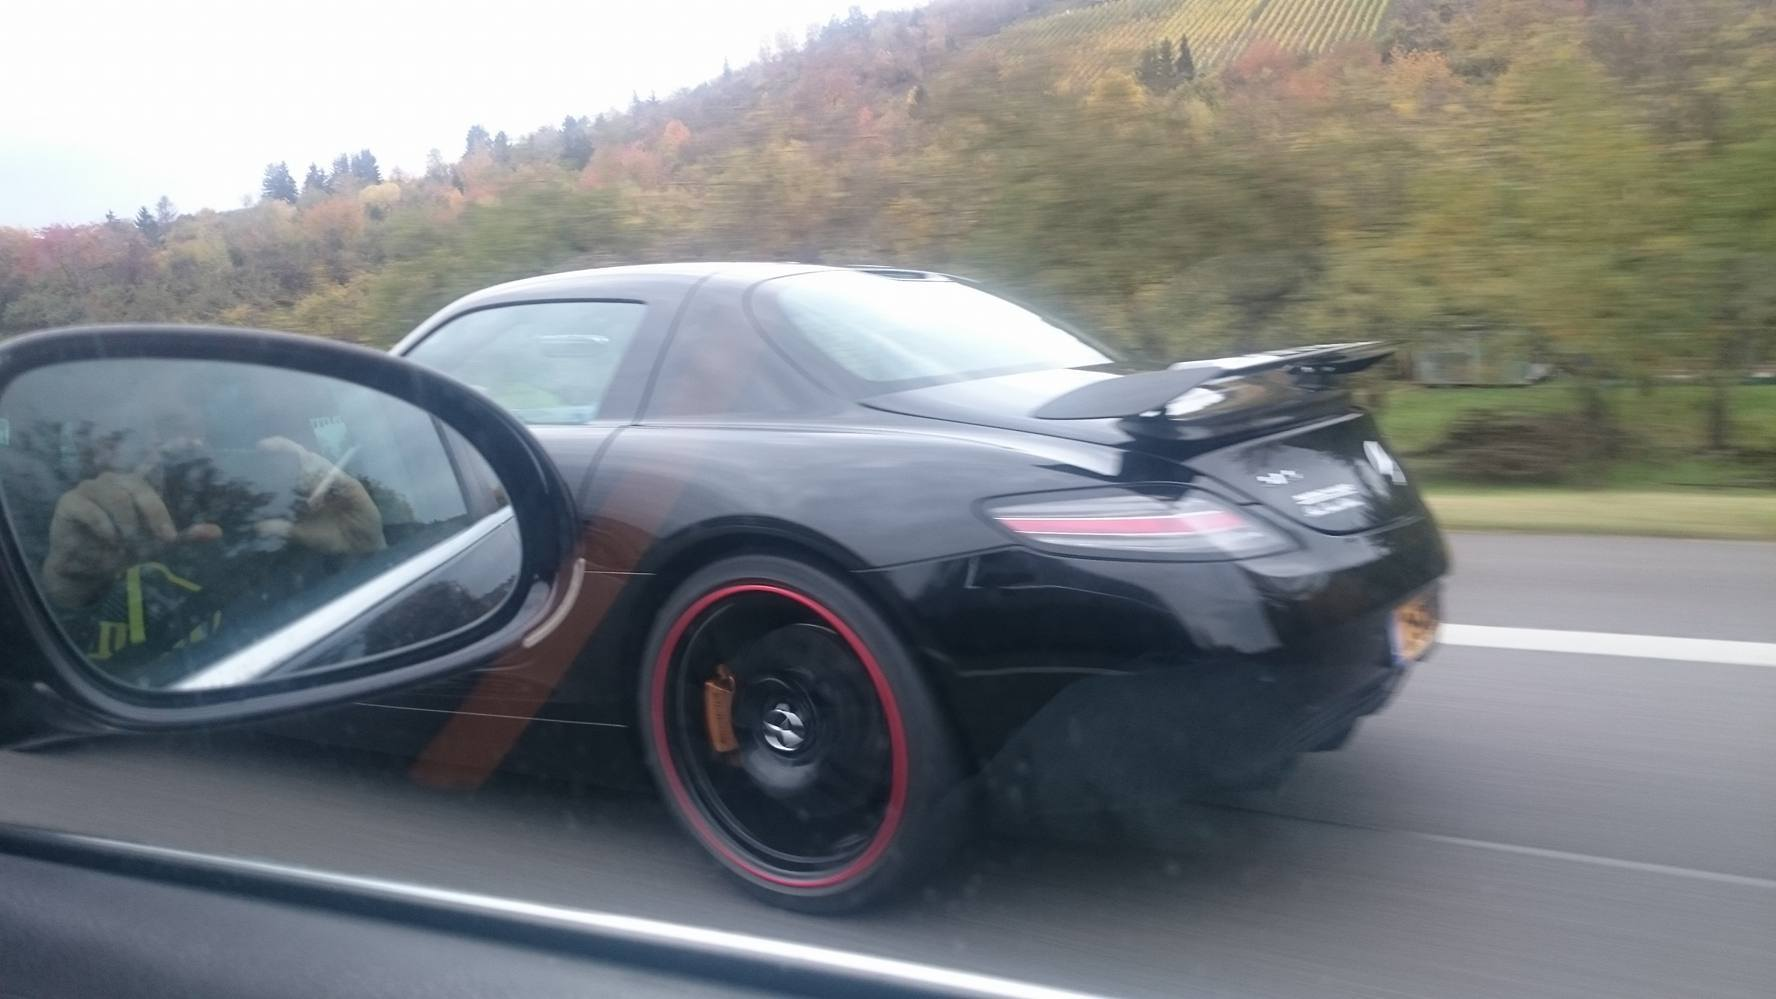 rare mercedes benz sls amg electric drive spotted in the wild autoevolution - Mercedes Benz Sls Amg Electric Drive Black